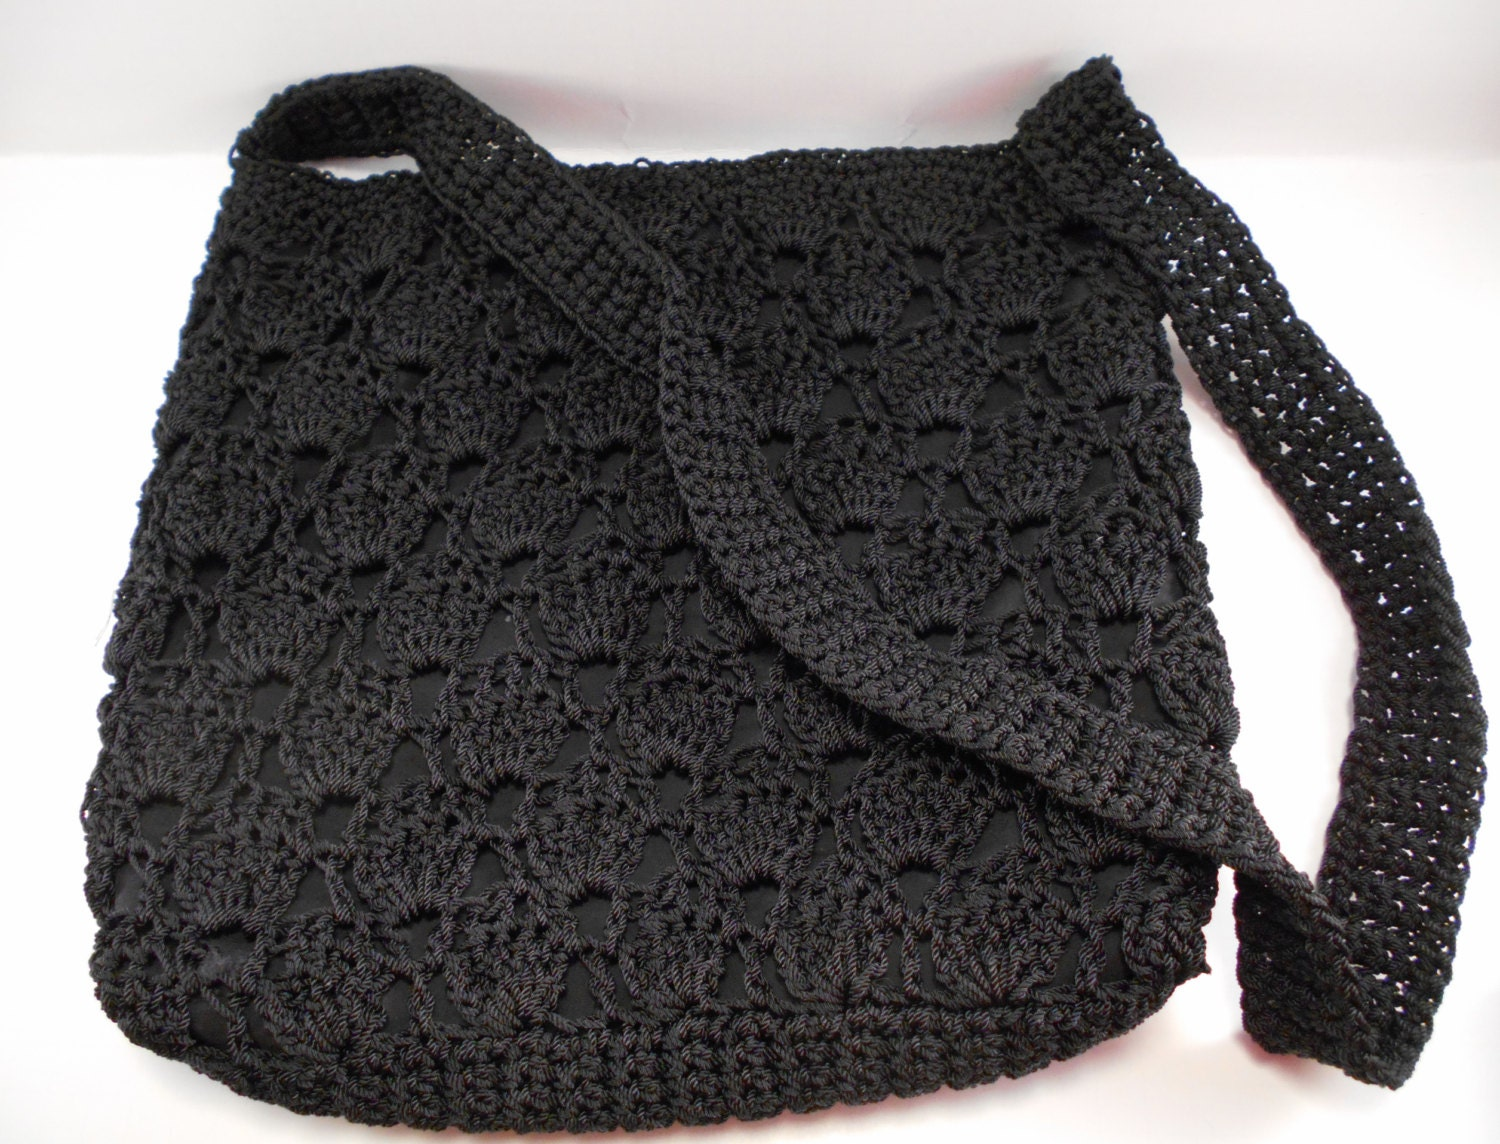 Black Nylon Crochet Crossbody Purse with pockets by AnnsBuyAThread